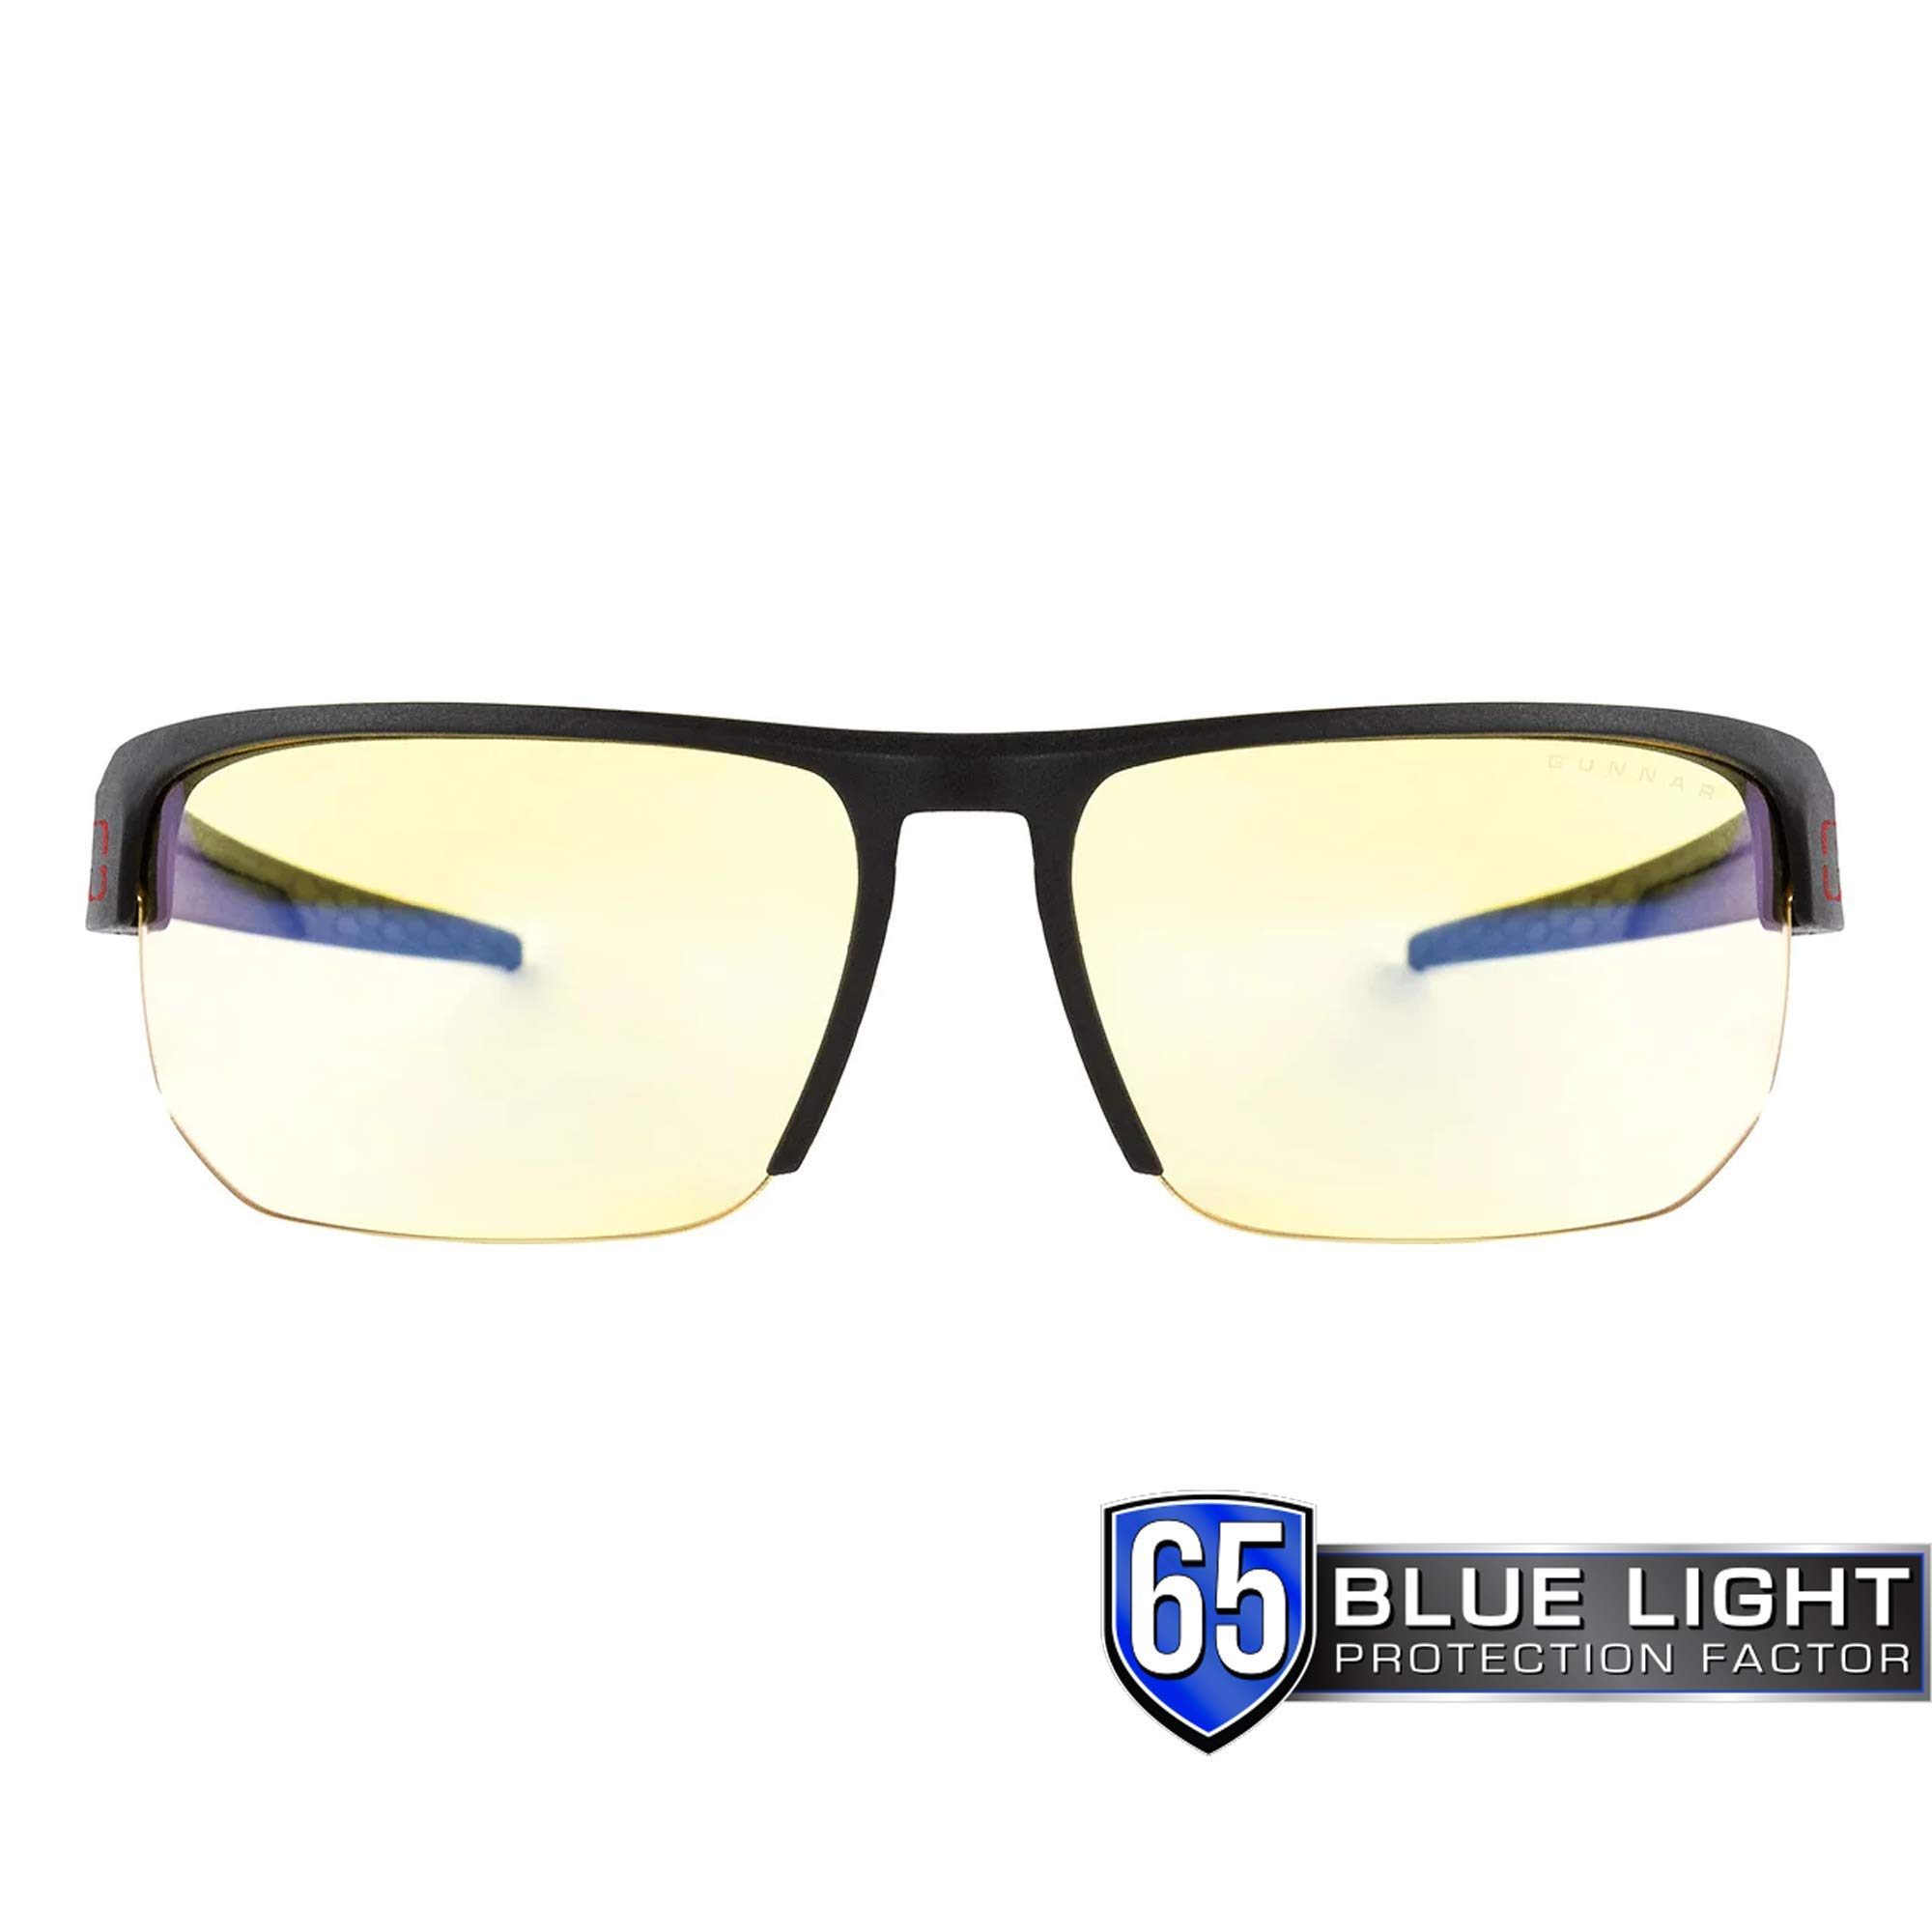 GUNNAR Gaming and Computer Eyewear/Torpedo, Amber Tint - Patented Lens, Reduce Digital Eye Strain, Block 65% of Harmful Blue Light